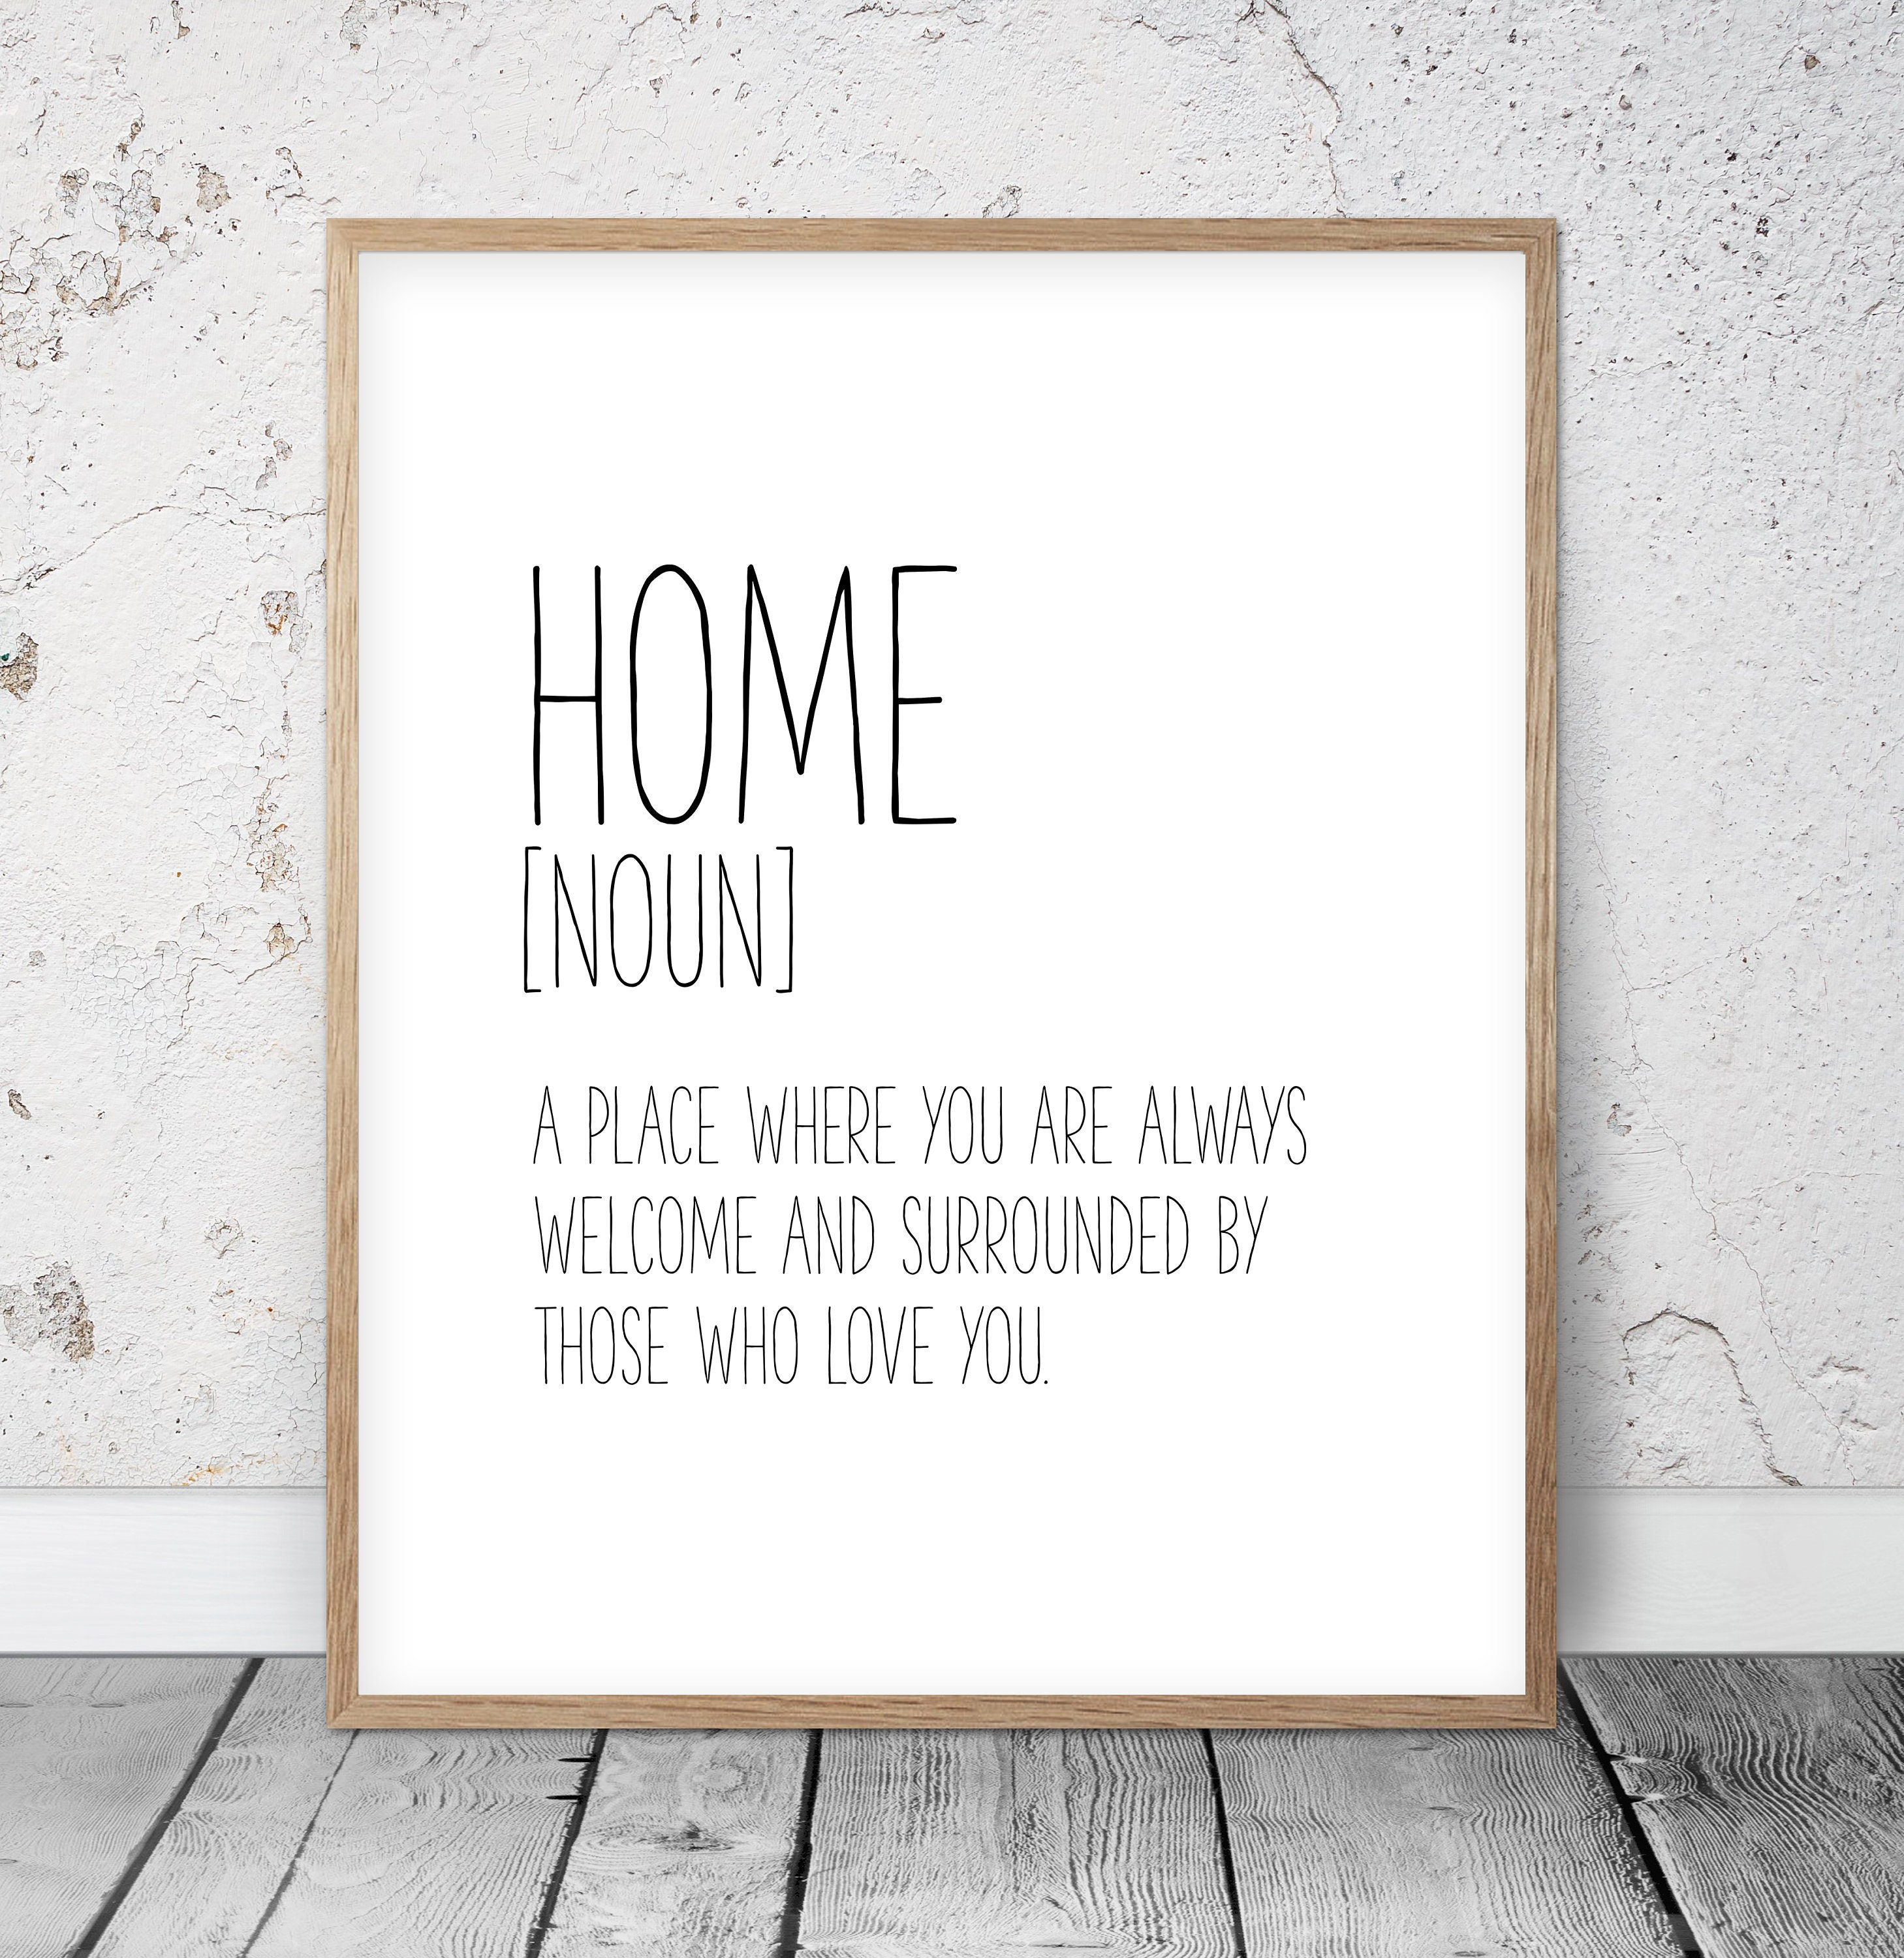 Home Definition Sign Home Decor Wall Art Home Quotes